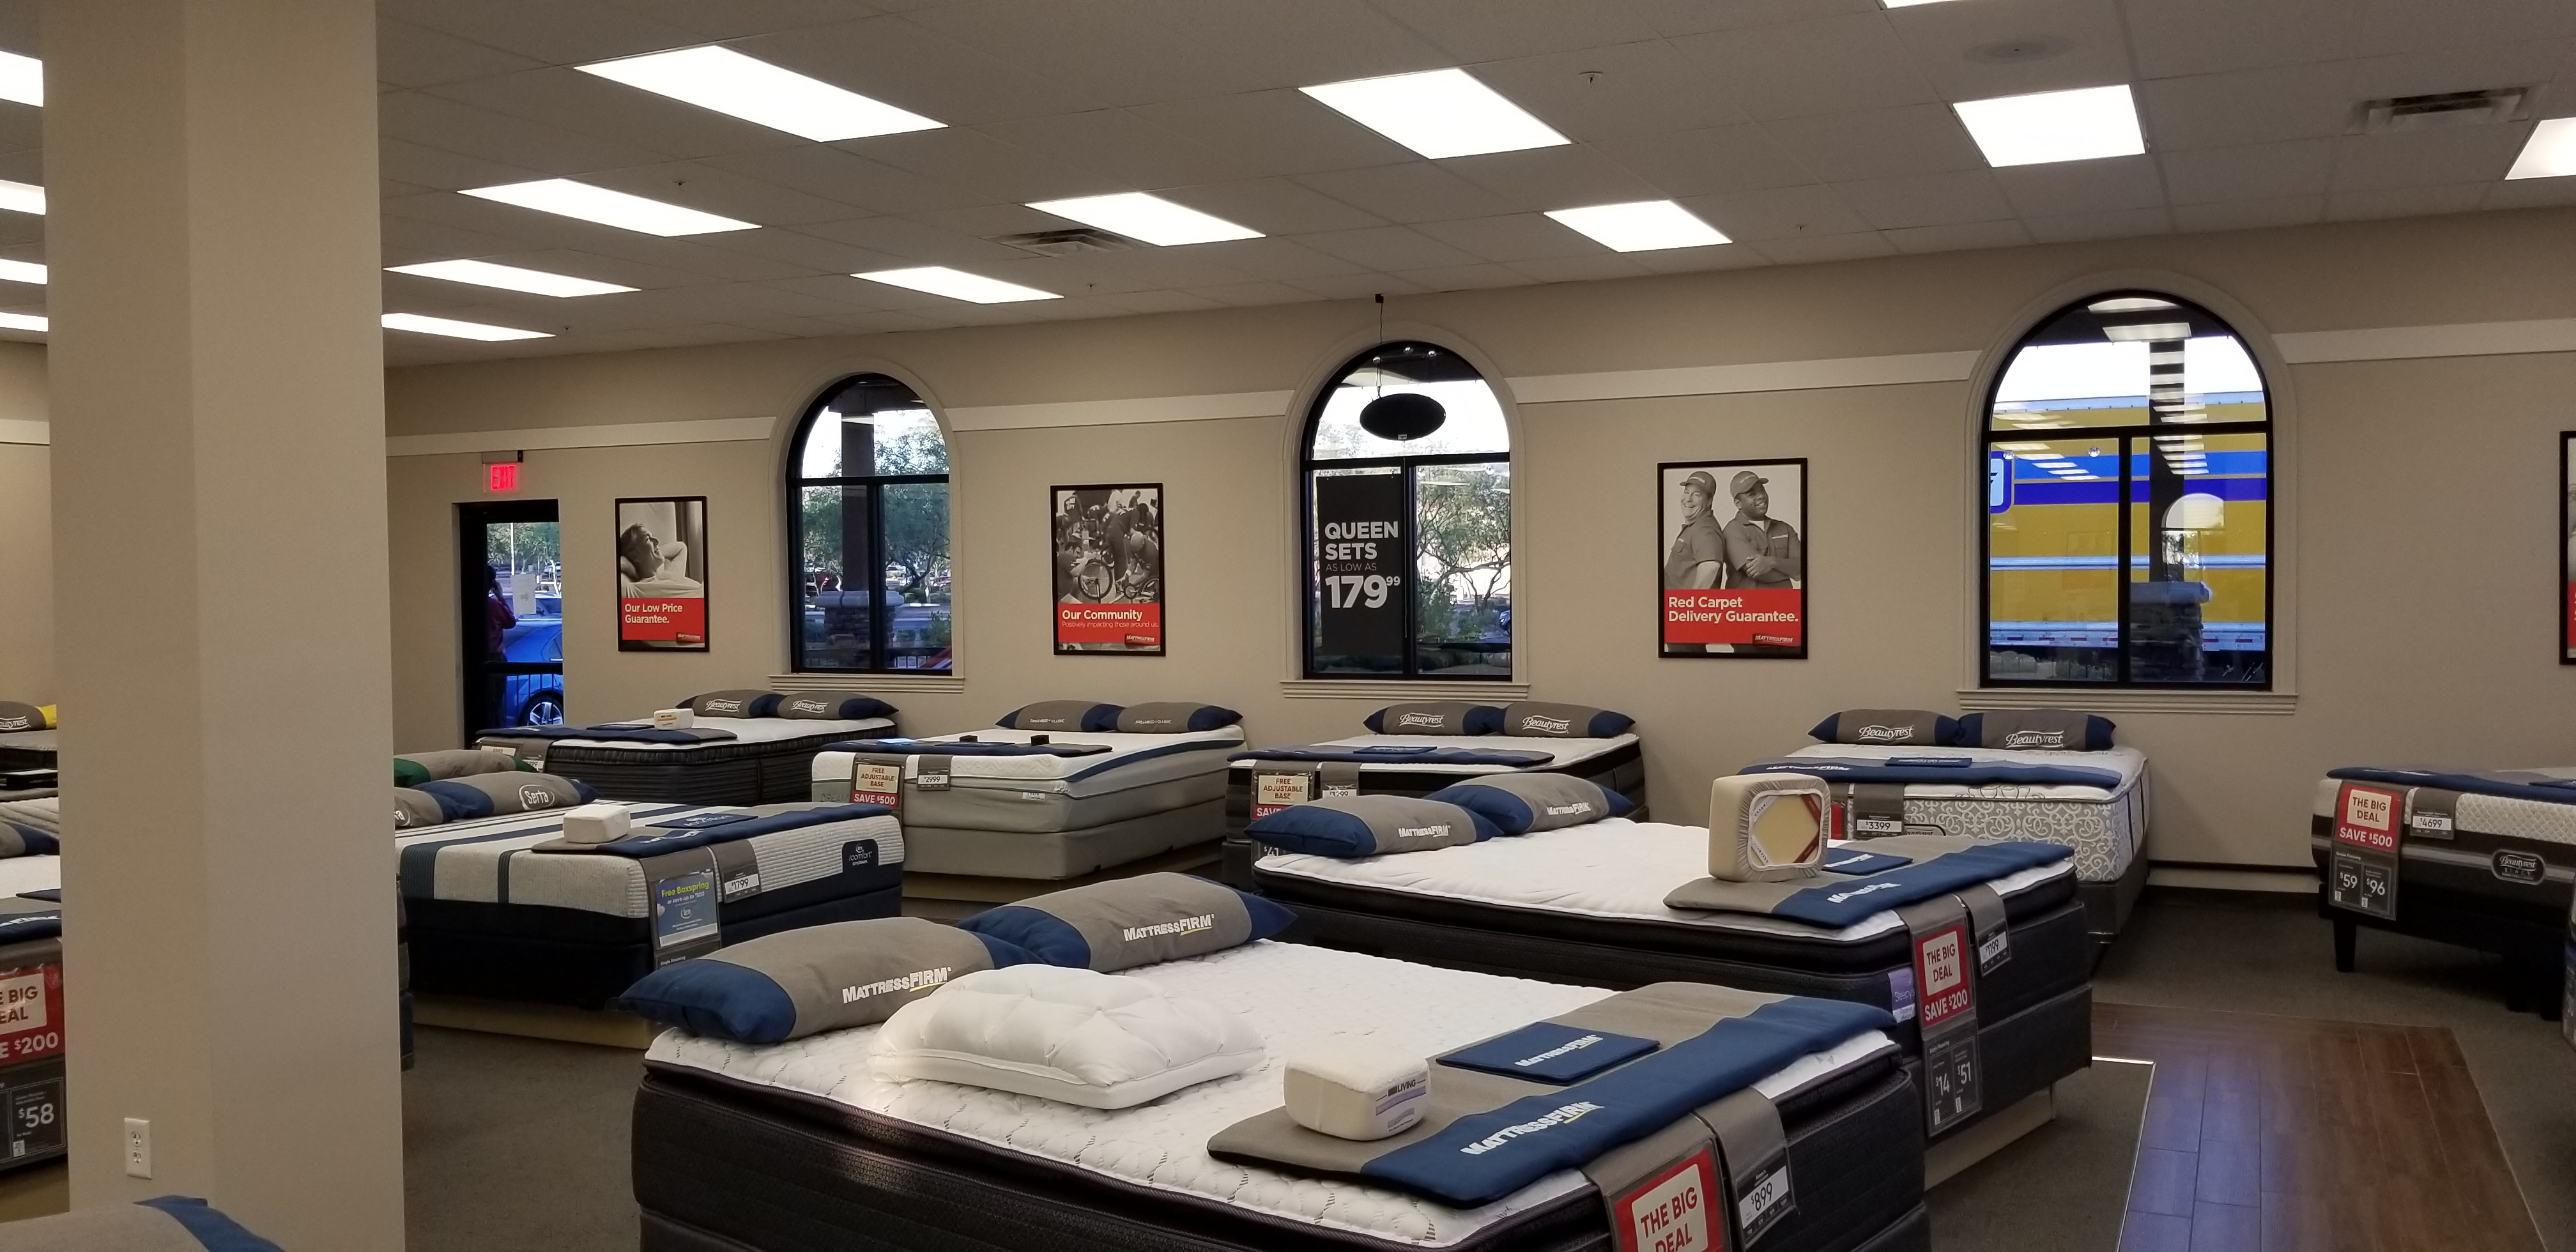 Mattress Firm Phoenix image 4